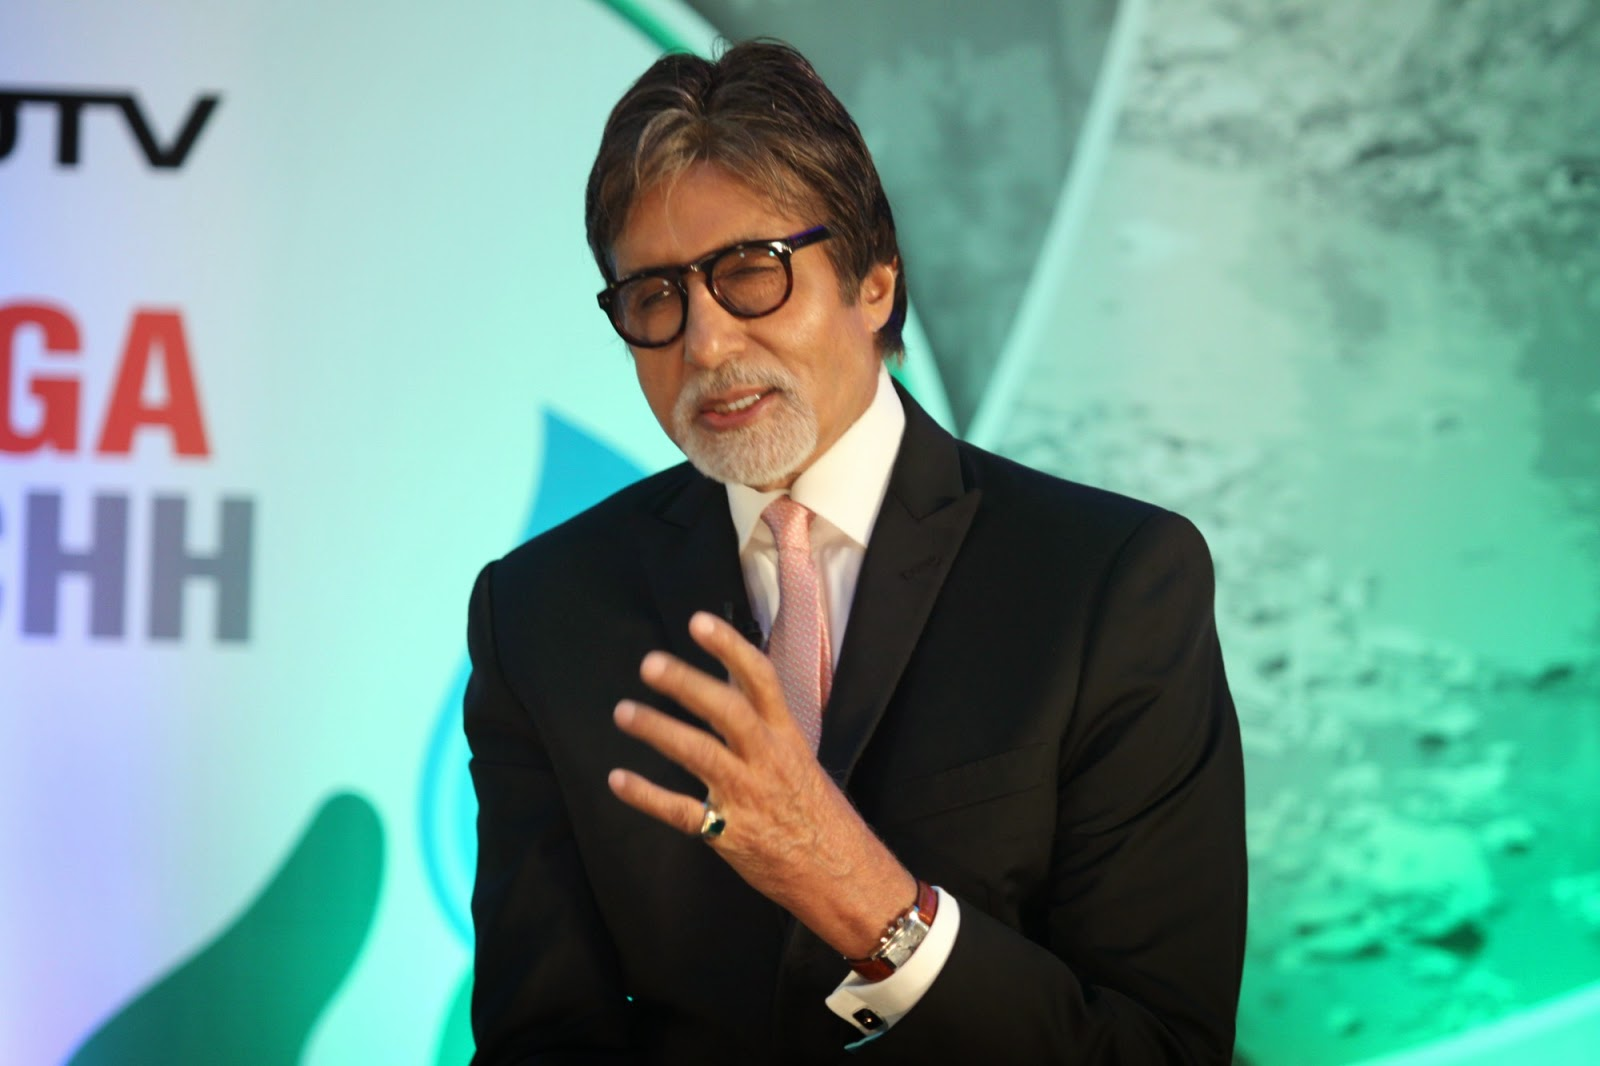 Amitabh Bachchan At Launch Of Dettol Banega Swachh India Initiative